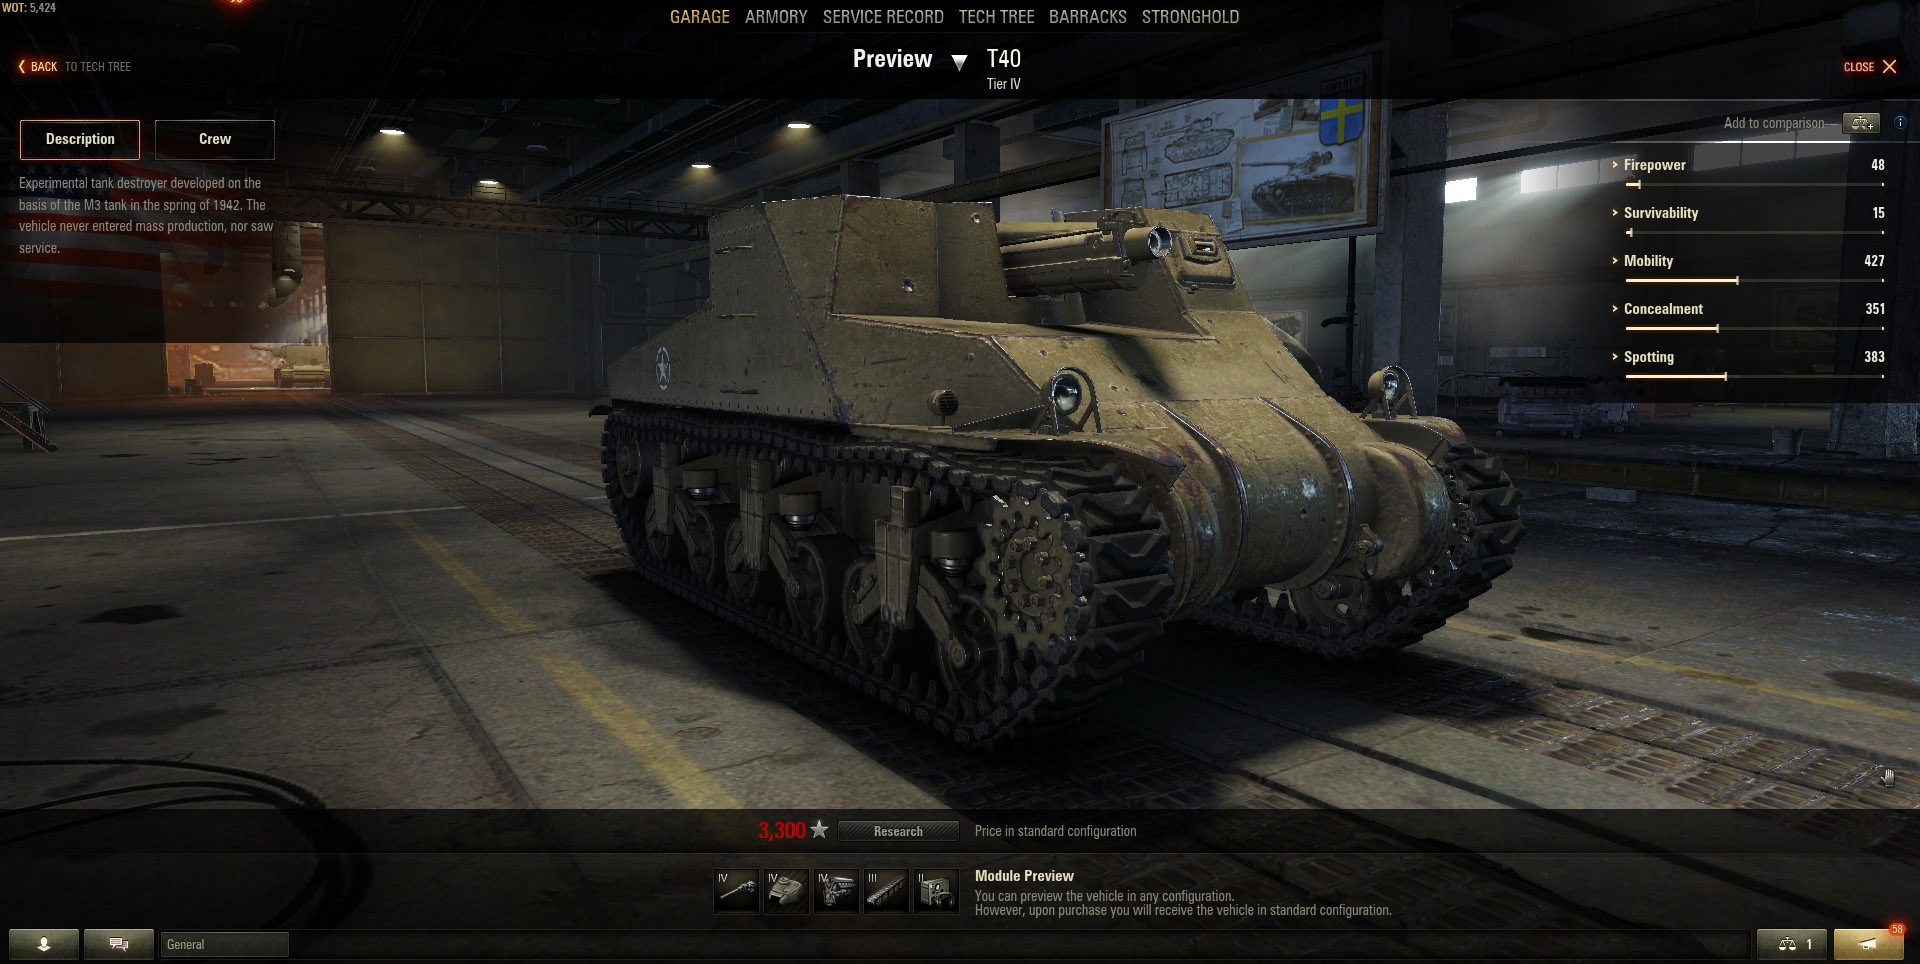 The T40 is a USA Tank Destroyer that can be used in multiple ways on the battlefield.